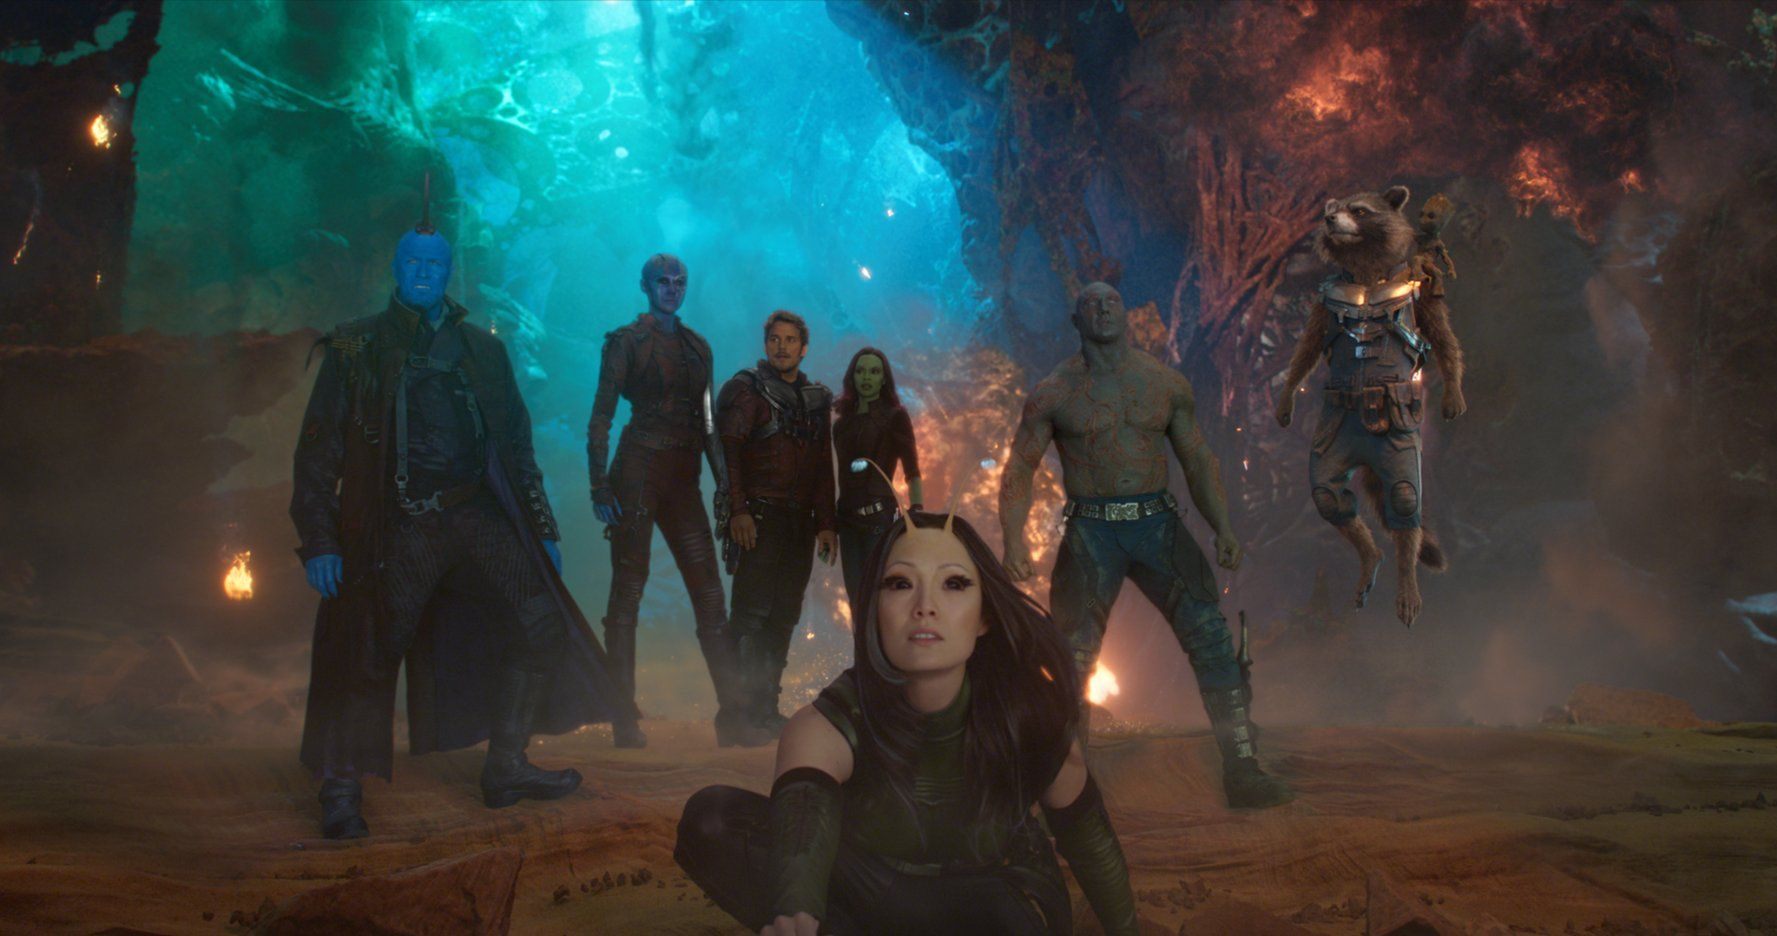 Best of 2017: Our Favorite Movie Stills | Guardians of the galaxy vol 2, Guardians of the galaxy, Marvel cinematic